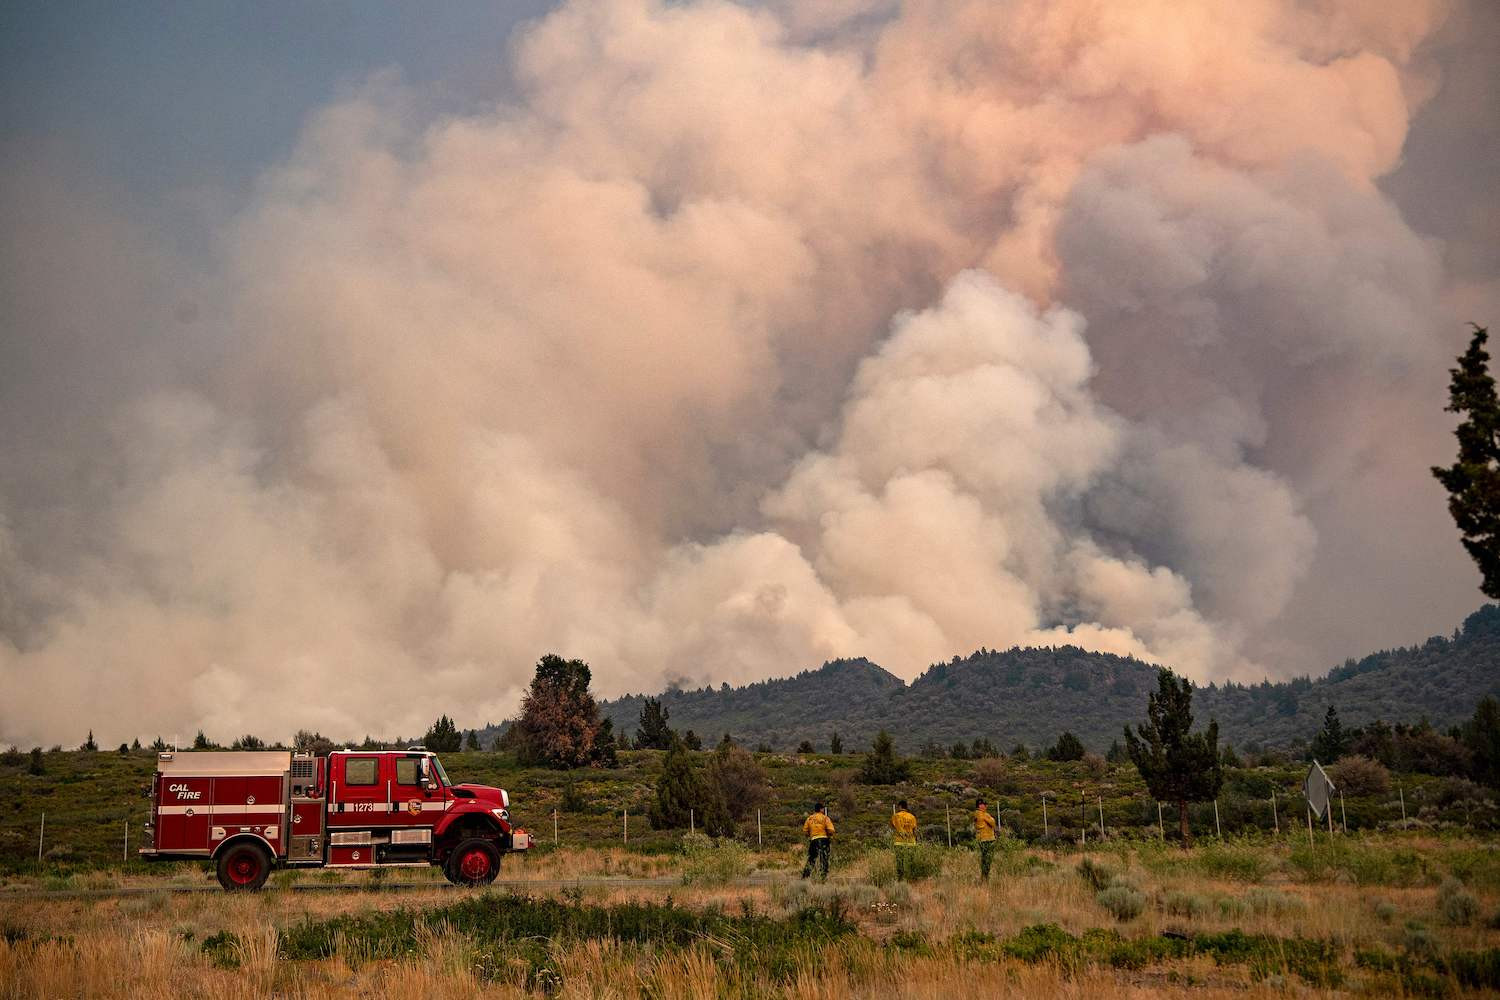 Firefighters monitoring the scene of a wildfire in Weed, California.